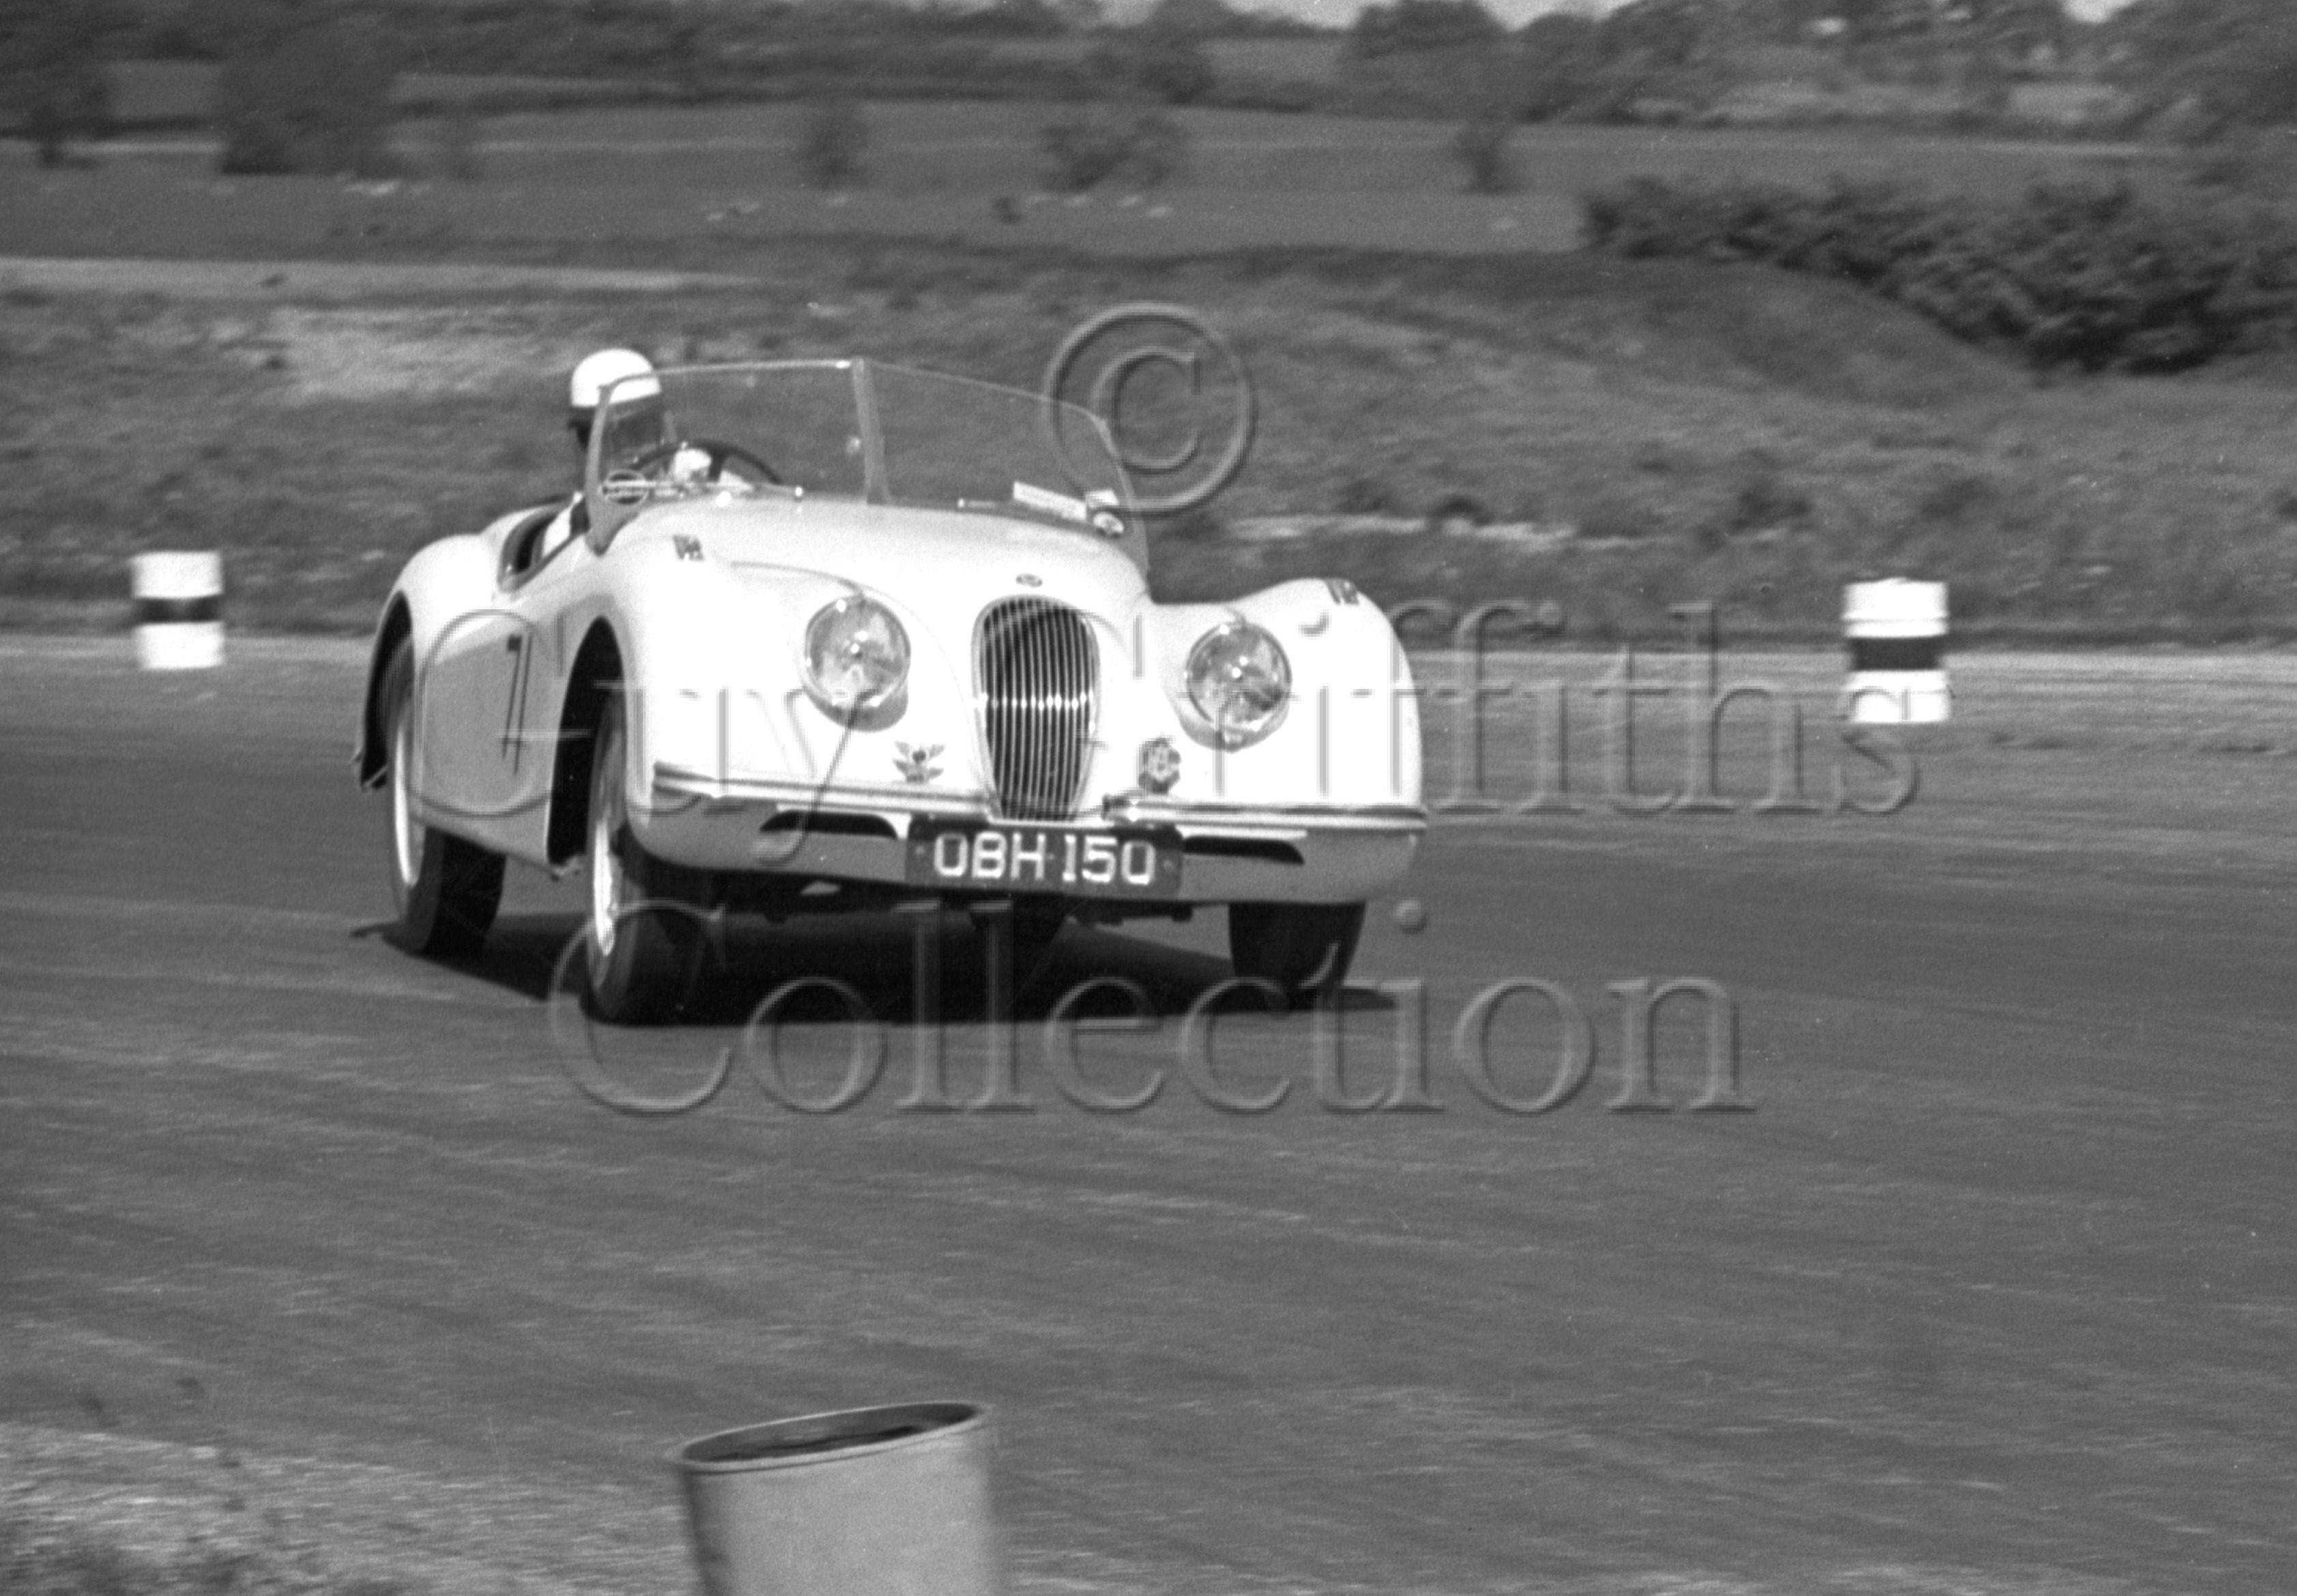 45-113–G-Lee–Jaguar–Silverstone–02-06-1951.jpg - The Guy Griffiths Collection